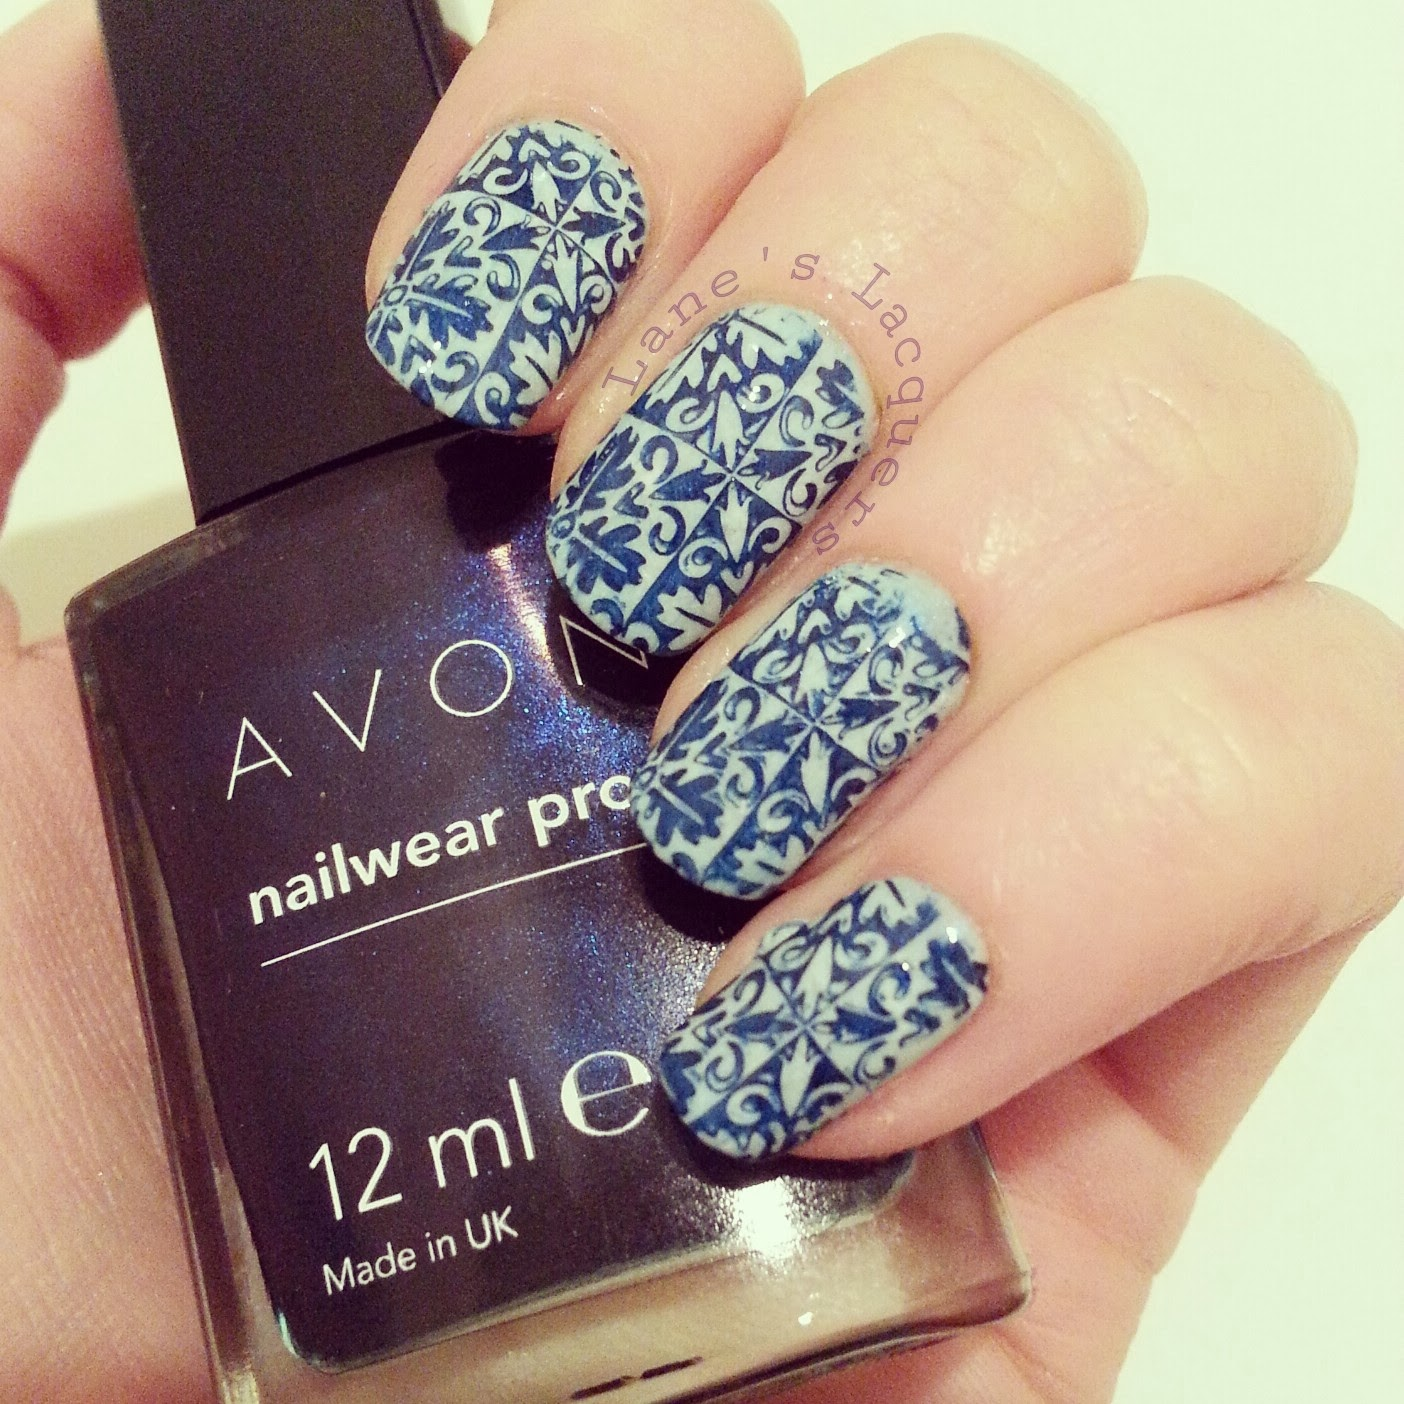 GOT-polish-challenge-tunisian-tile-pattern-nails